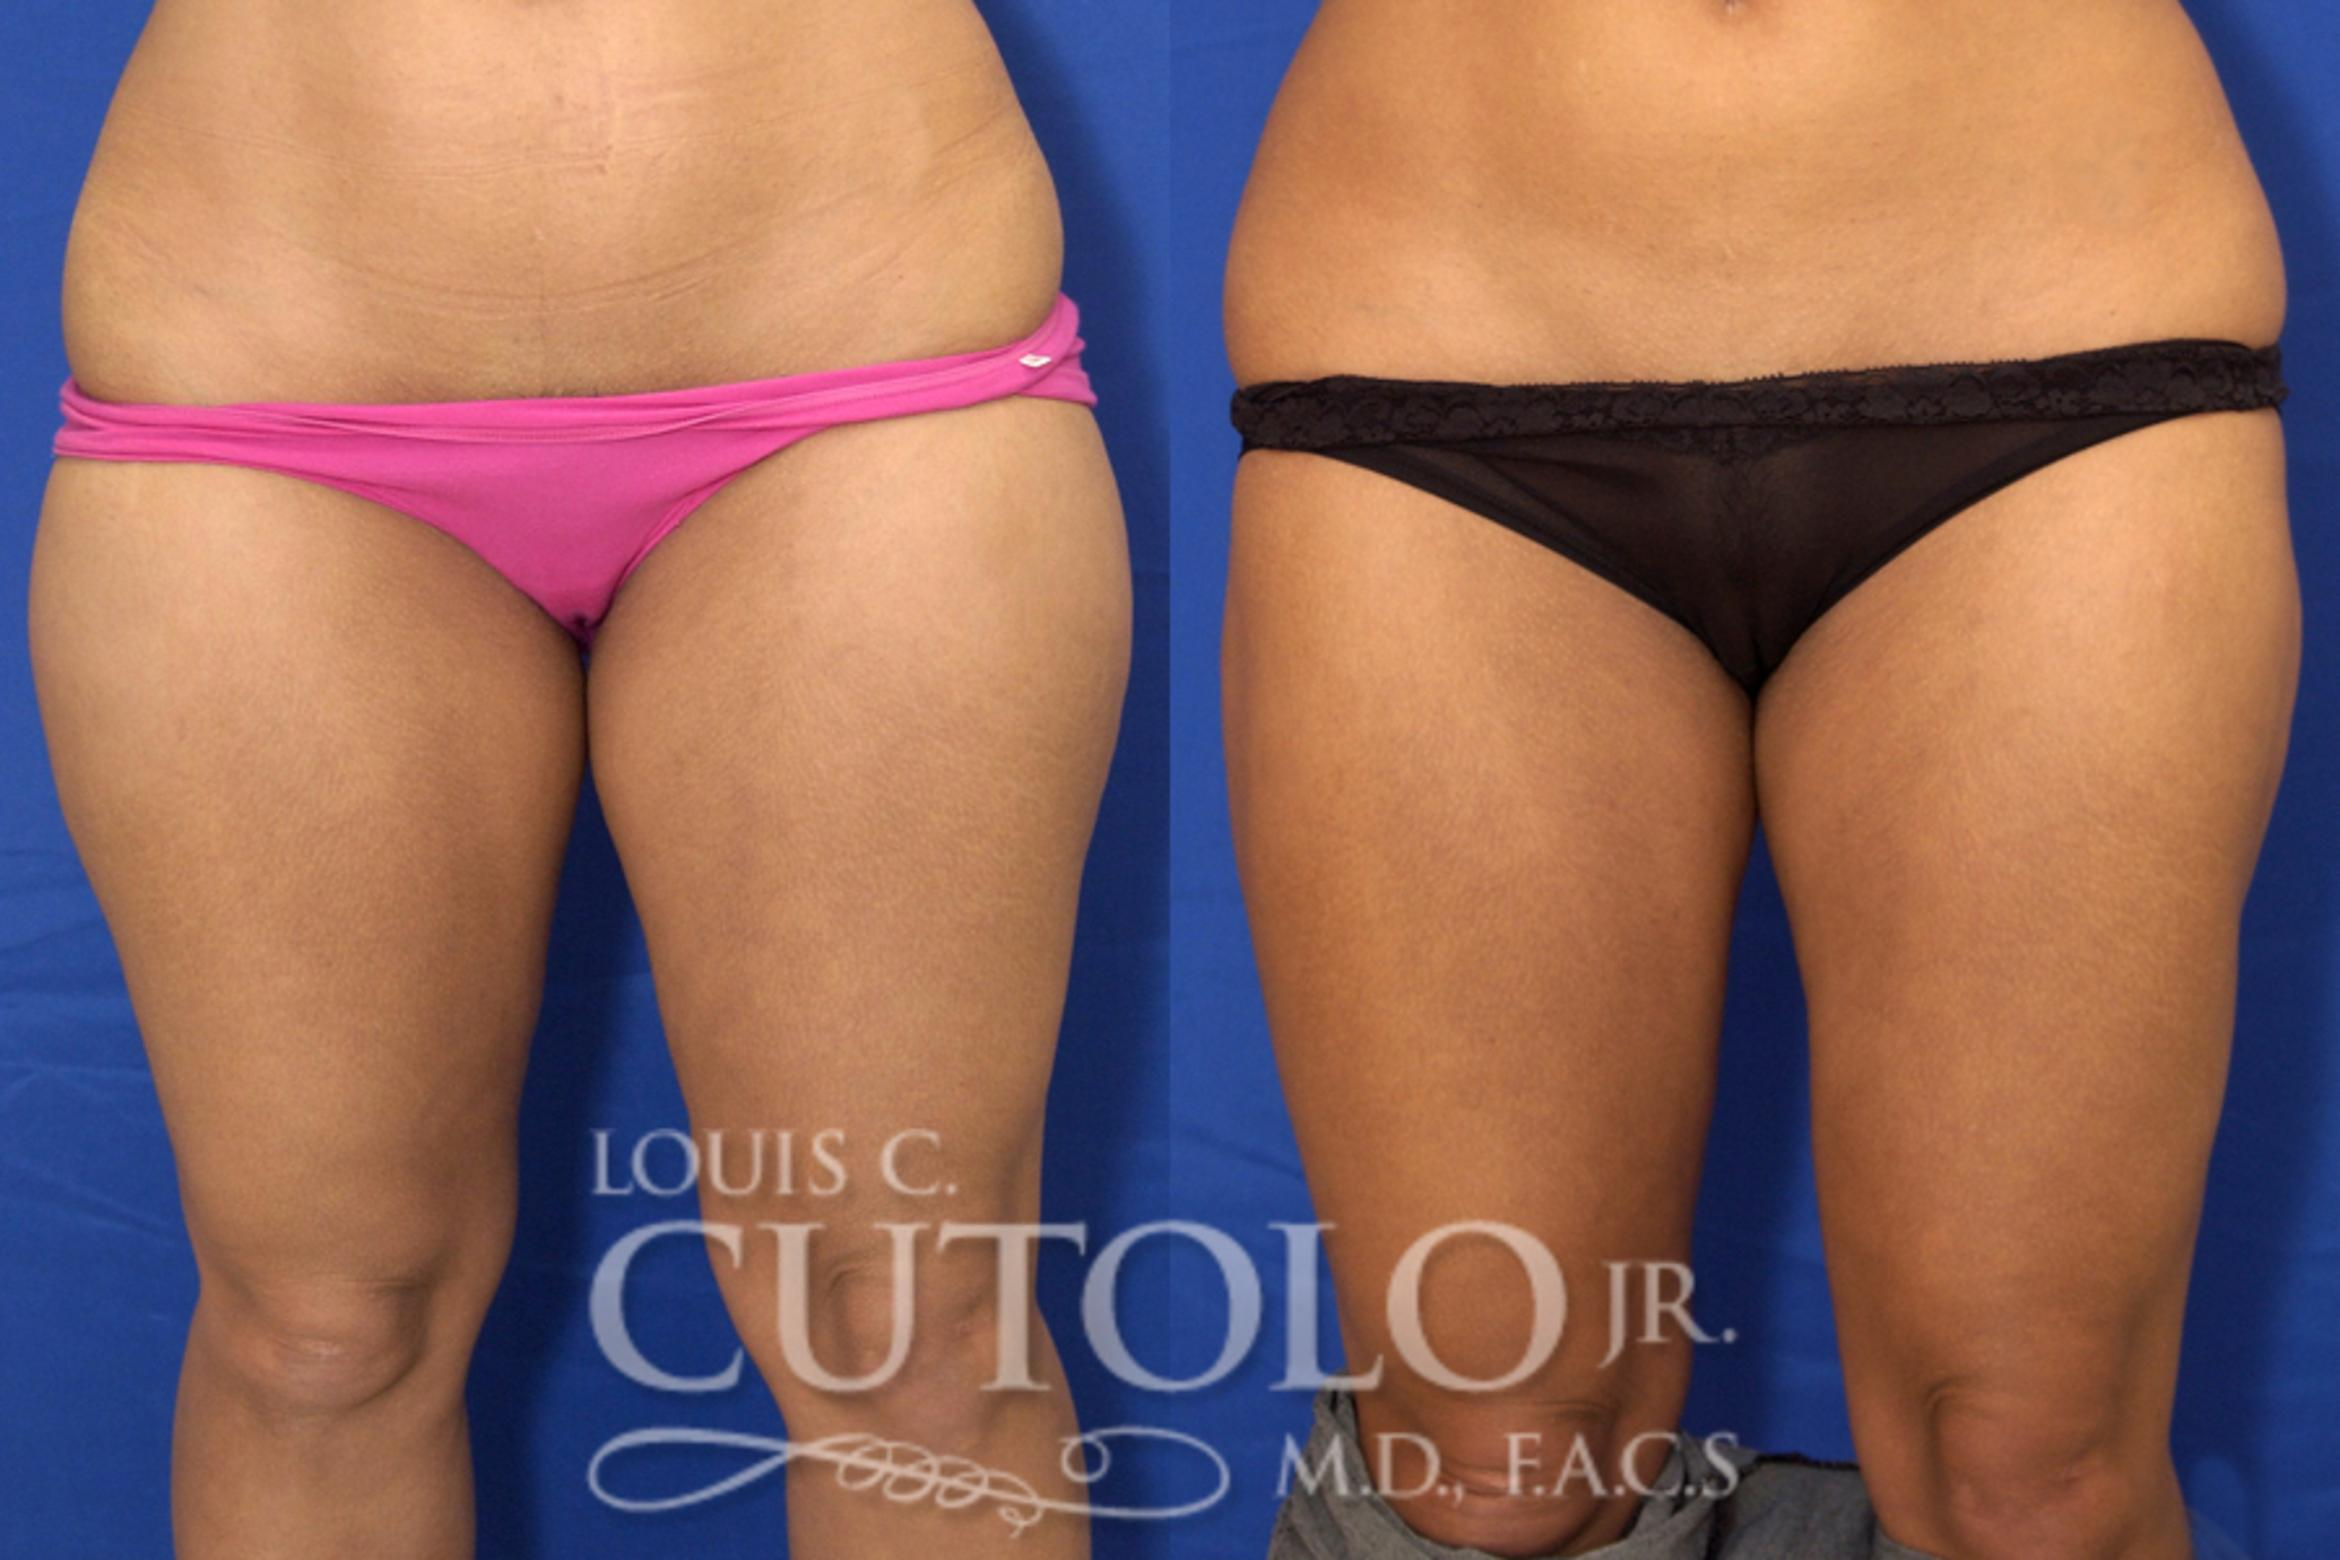 Liposuction Before & After Photo | Staten Island, NY | Louis C. Cotolo, Jr., M.D., F.A.C.S.